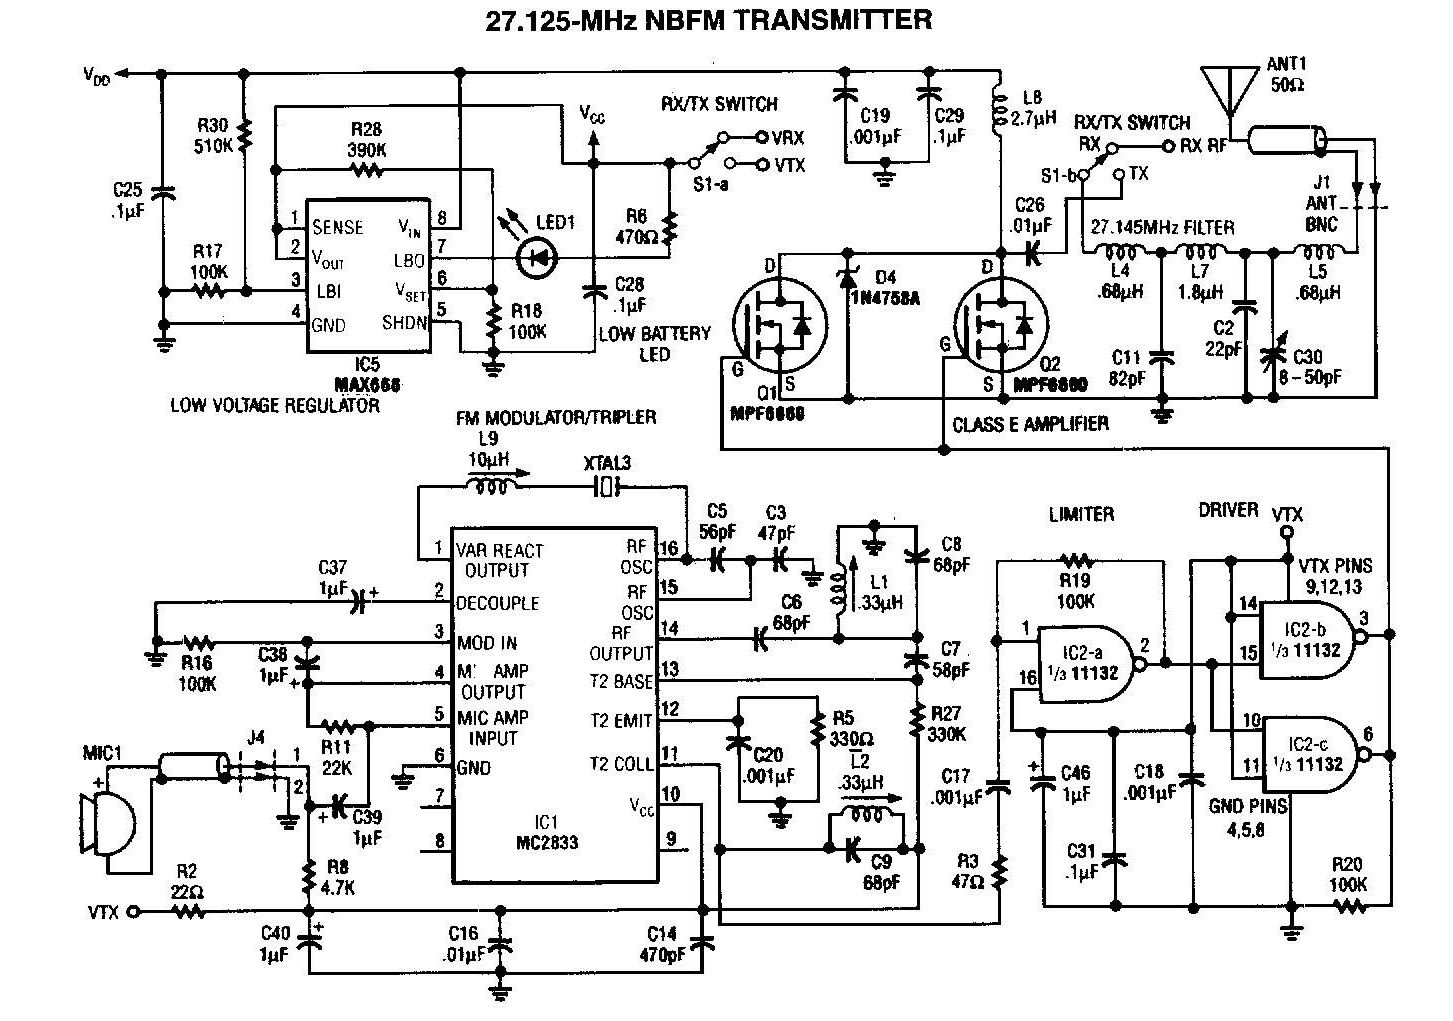 nbfm 27mhz transmitter circuit under repository